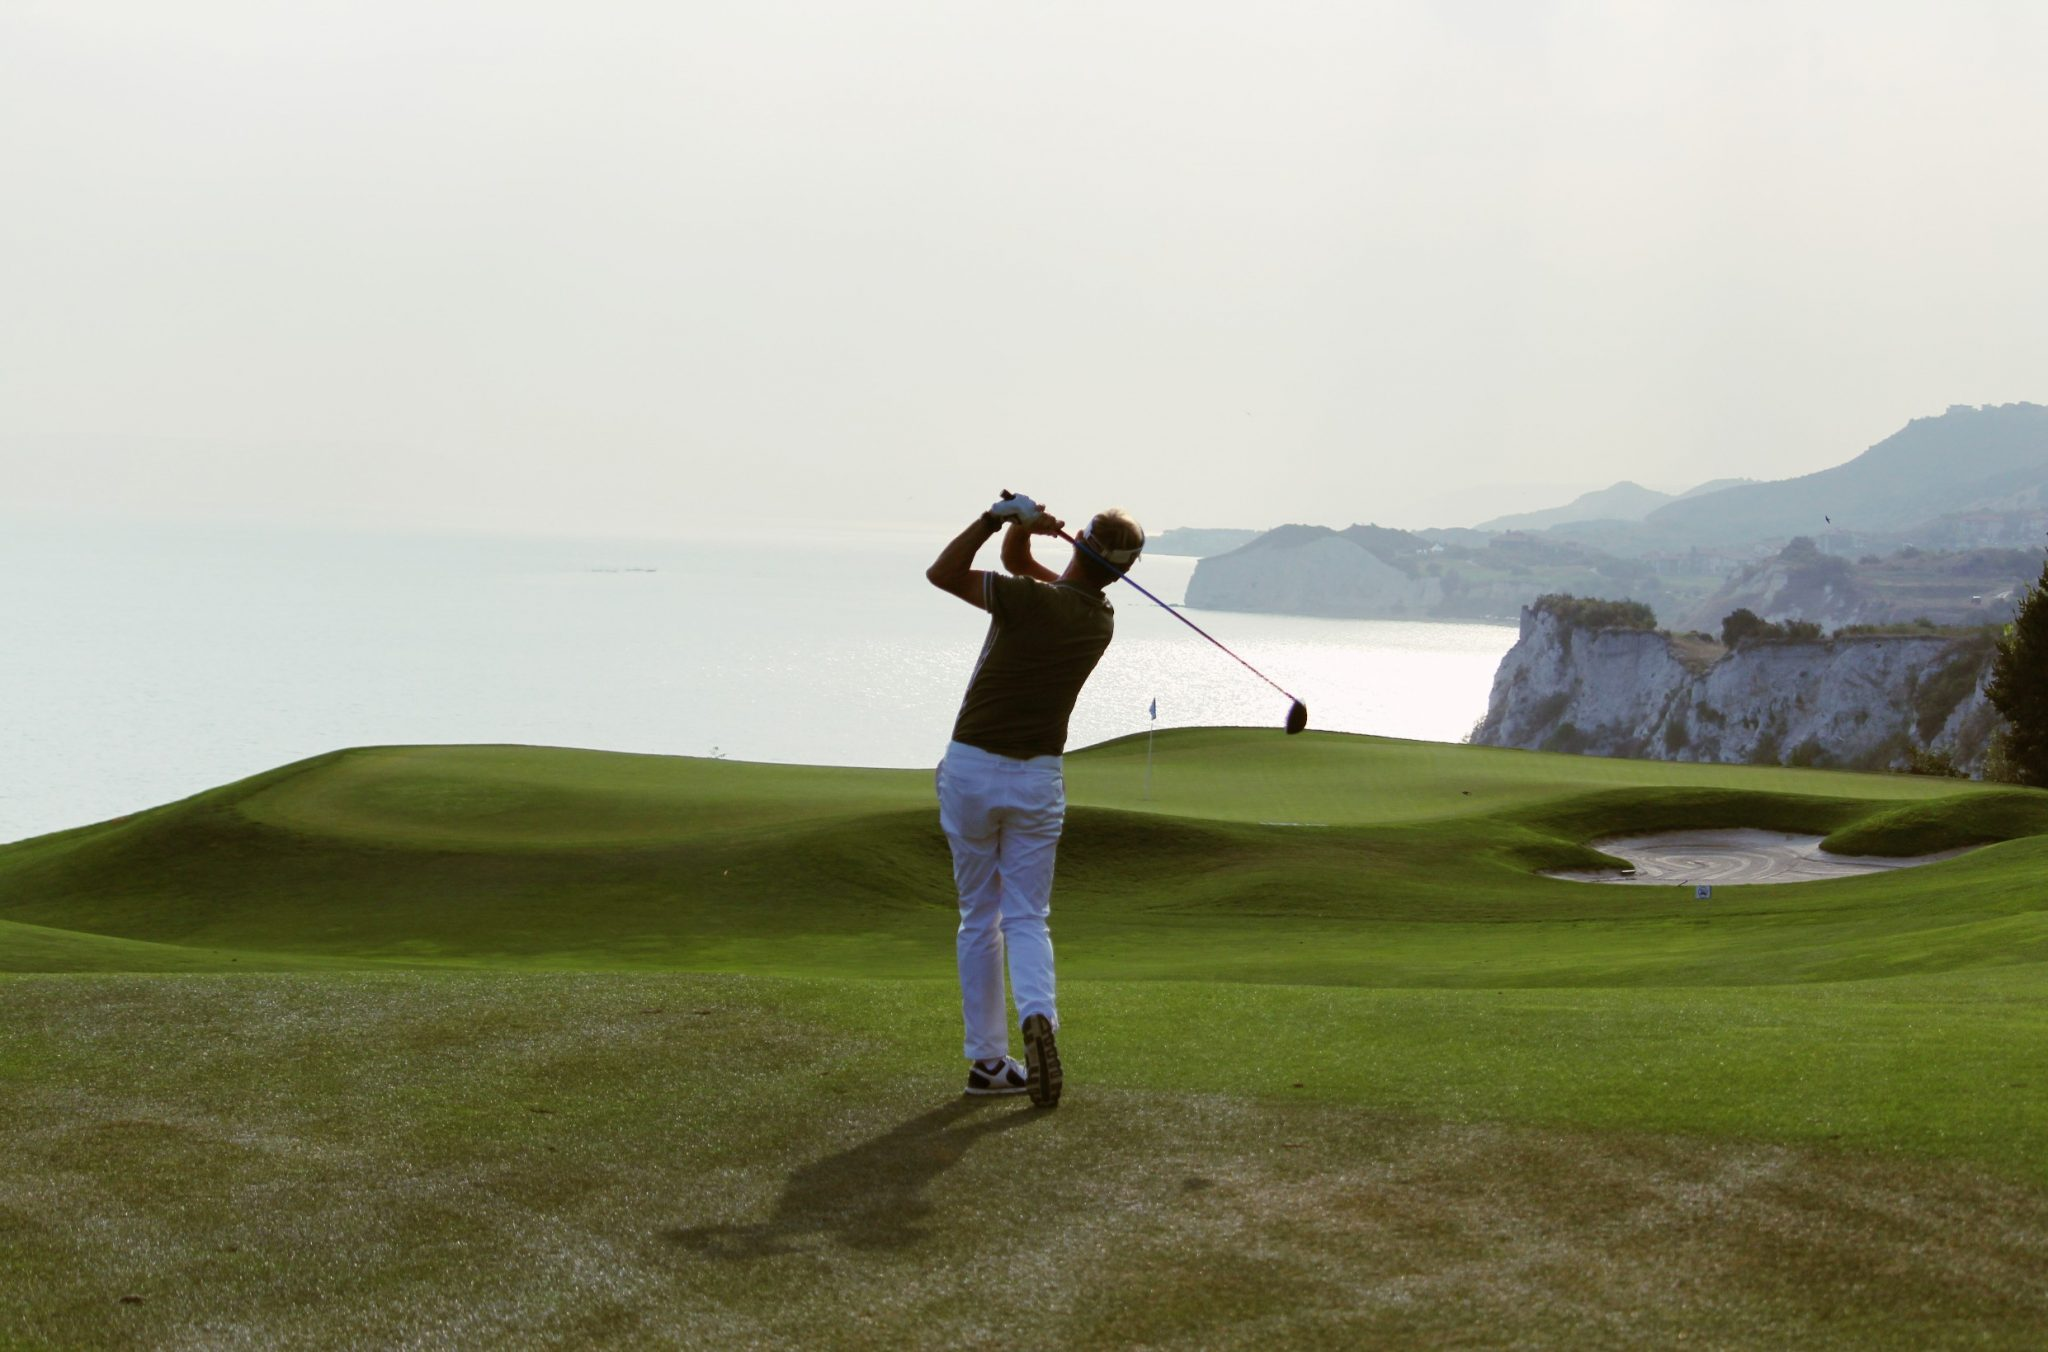 Thracian Cliffs views